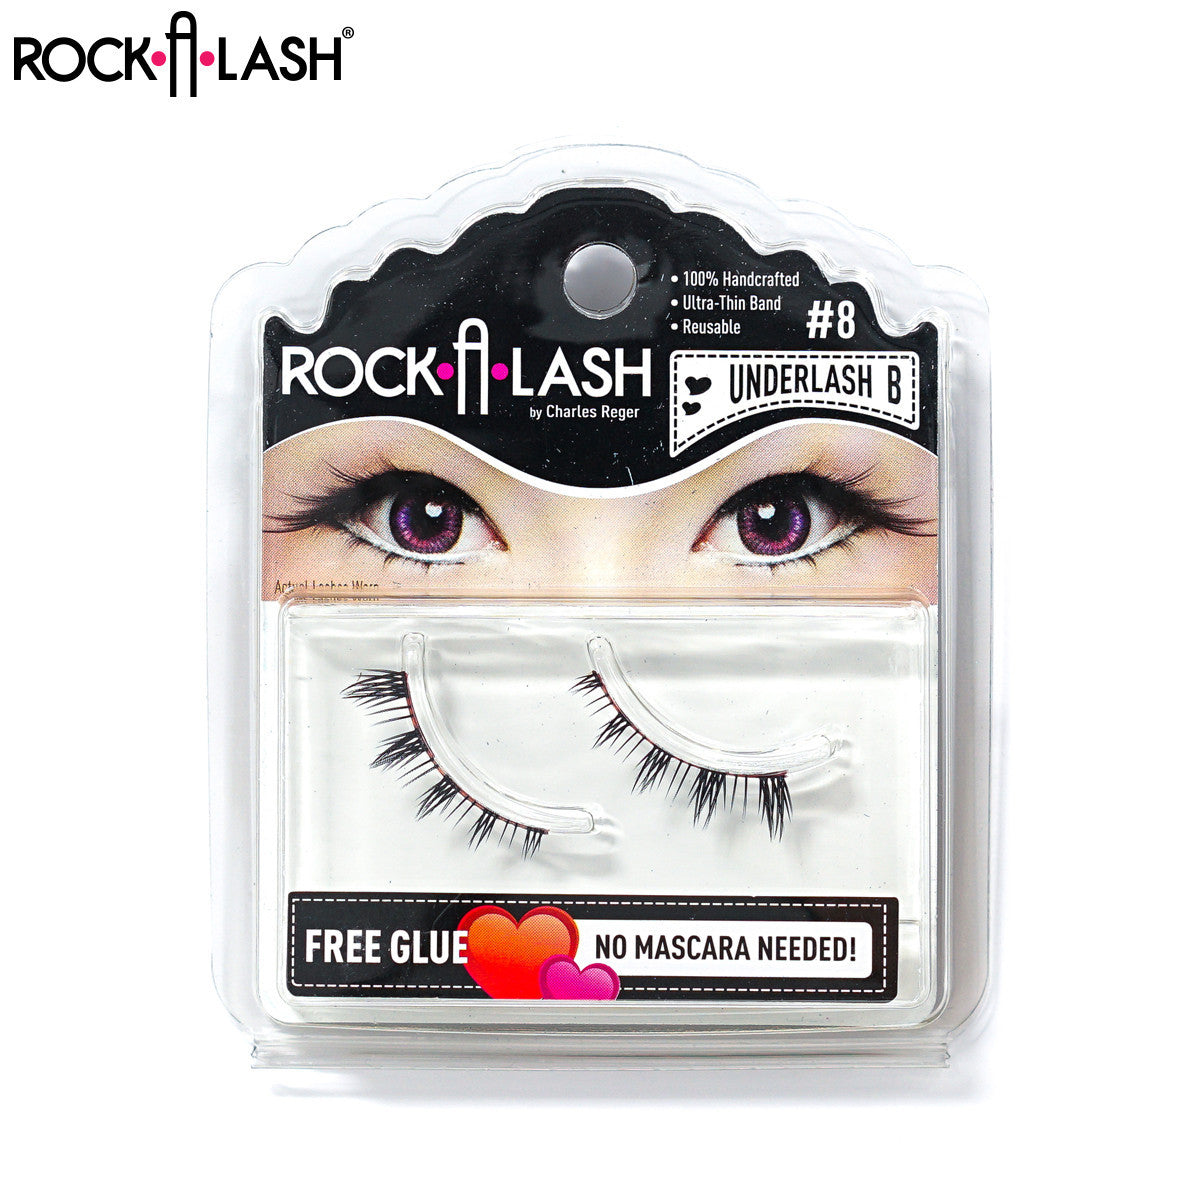 Rock-A-Lash ® <br> #08 - Underlash B™ - 1 Pair